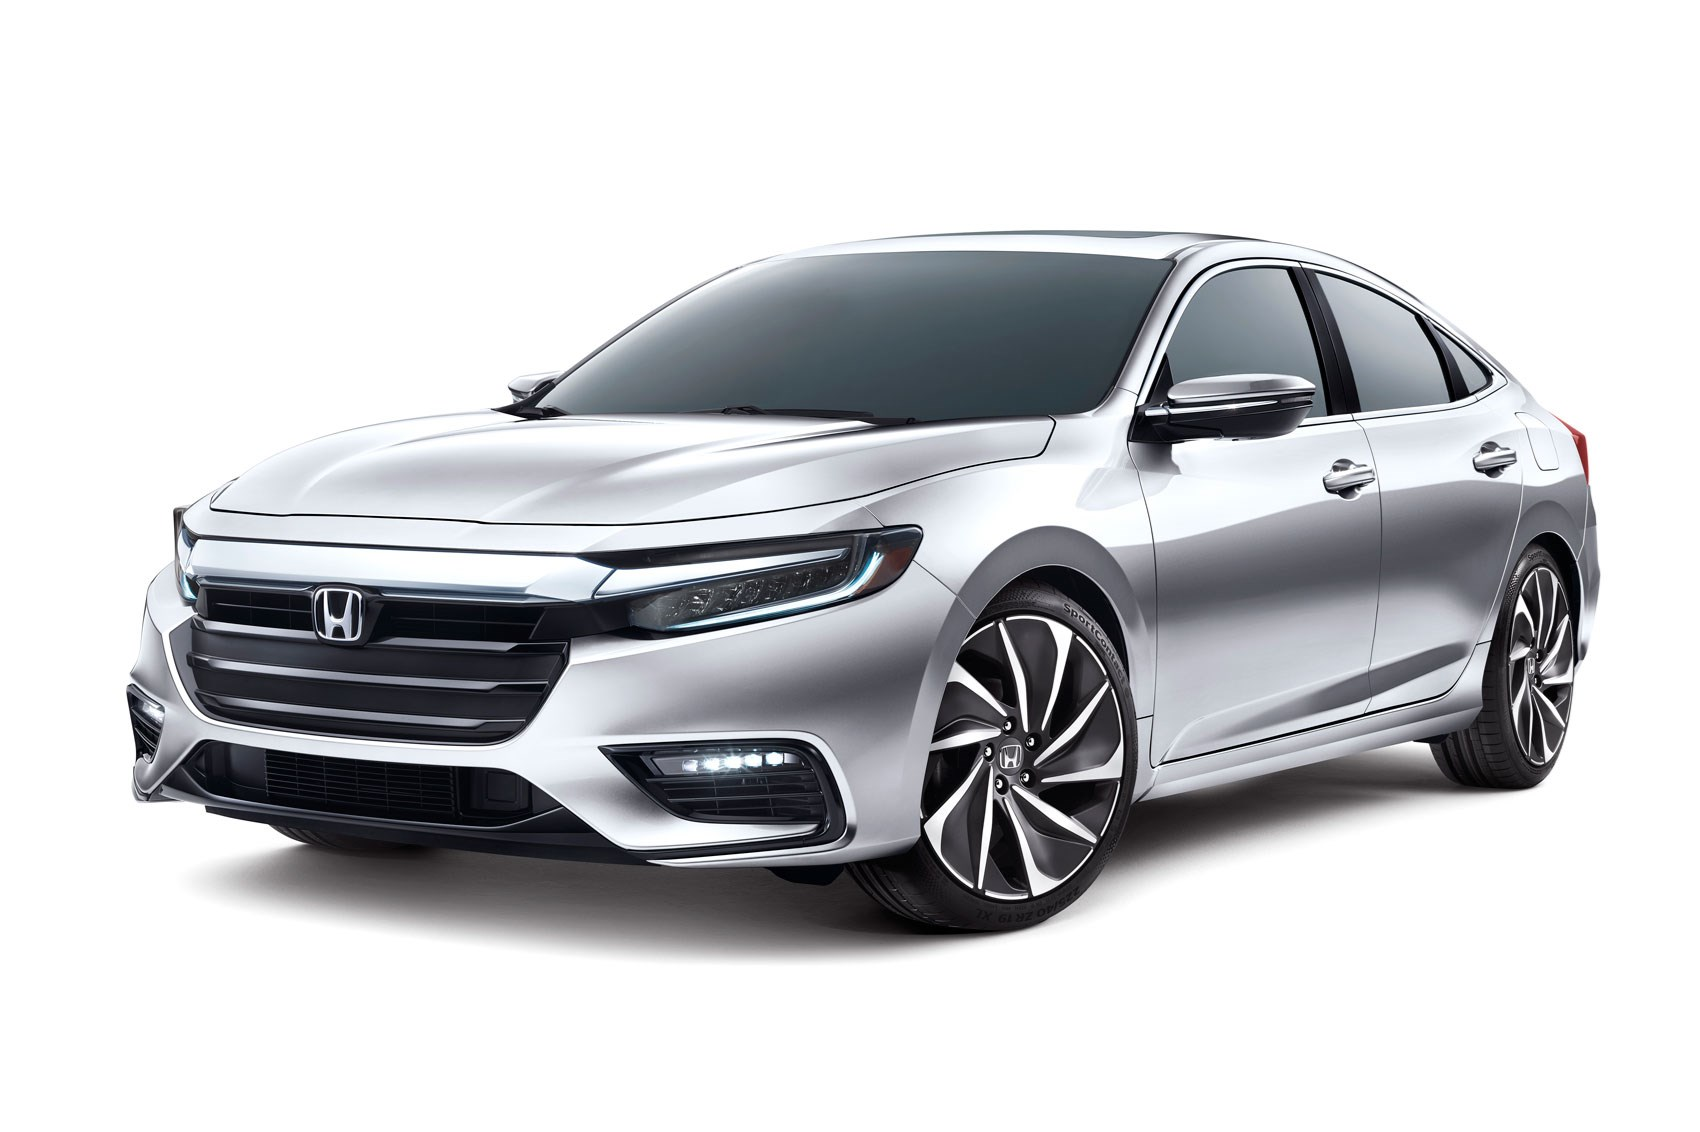 new honda insight sleek hybrid prototype 39 s specs detailed